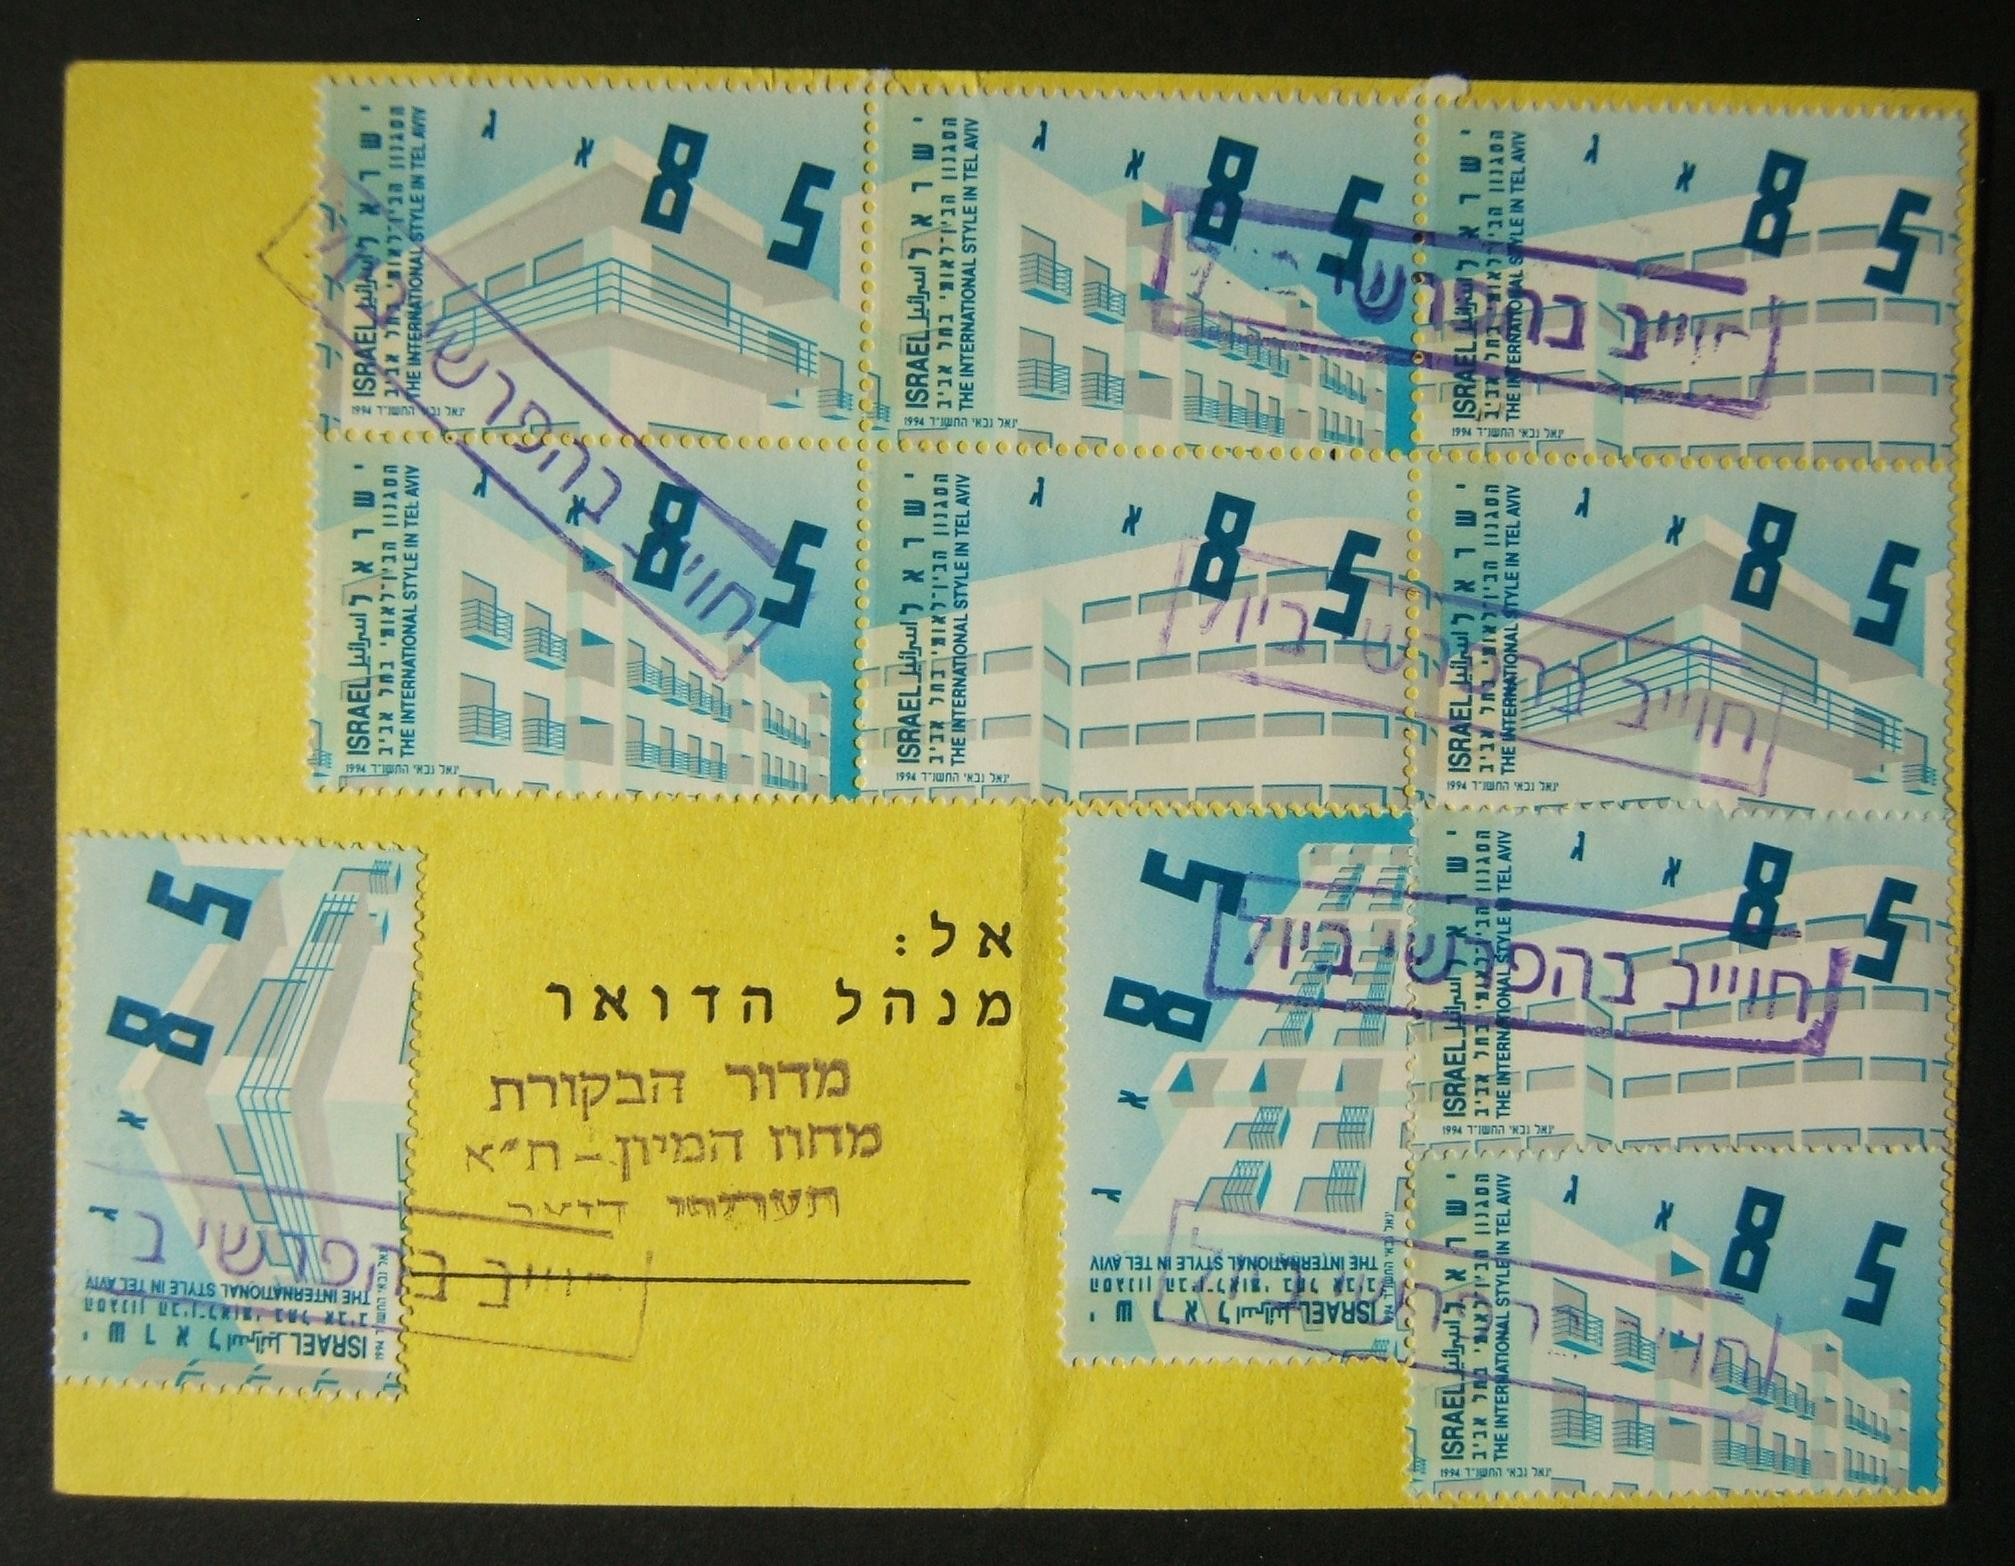 1994 multiple-franked sender taxation notice taxed using 14x 85ag Bauhaus stamps